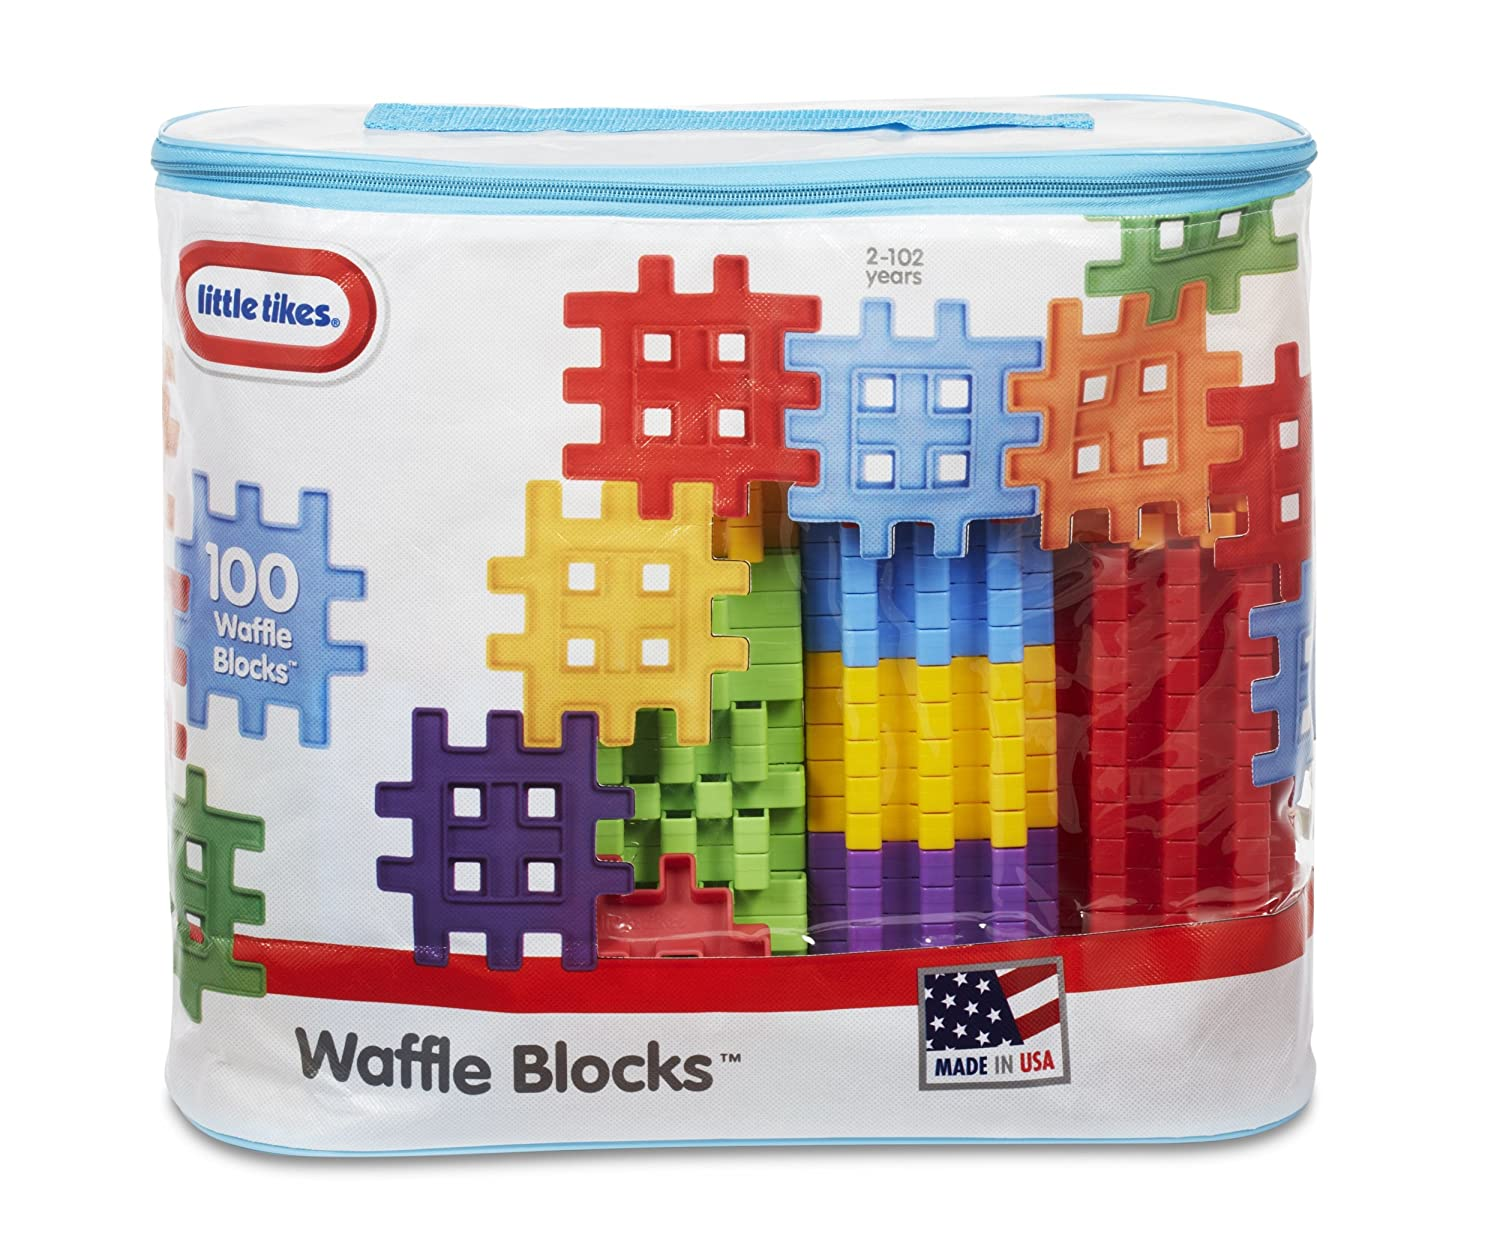 Little Tikes Waffle Blocks Bag (100 Piece) MGA Entertainment 645297